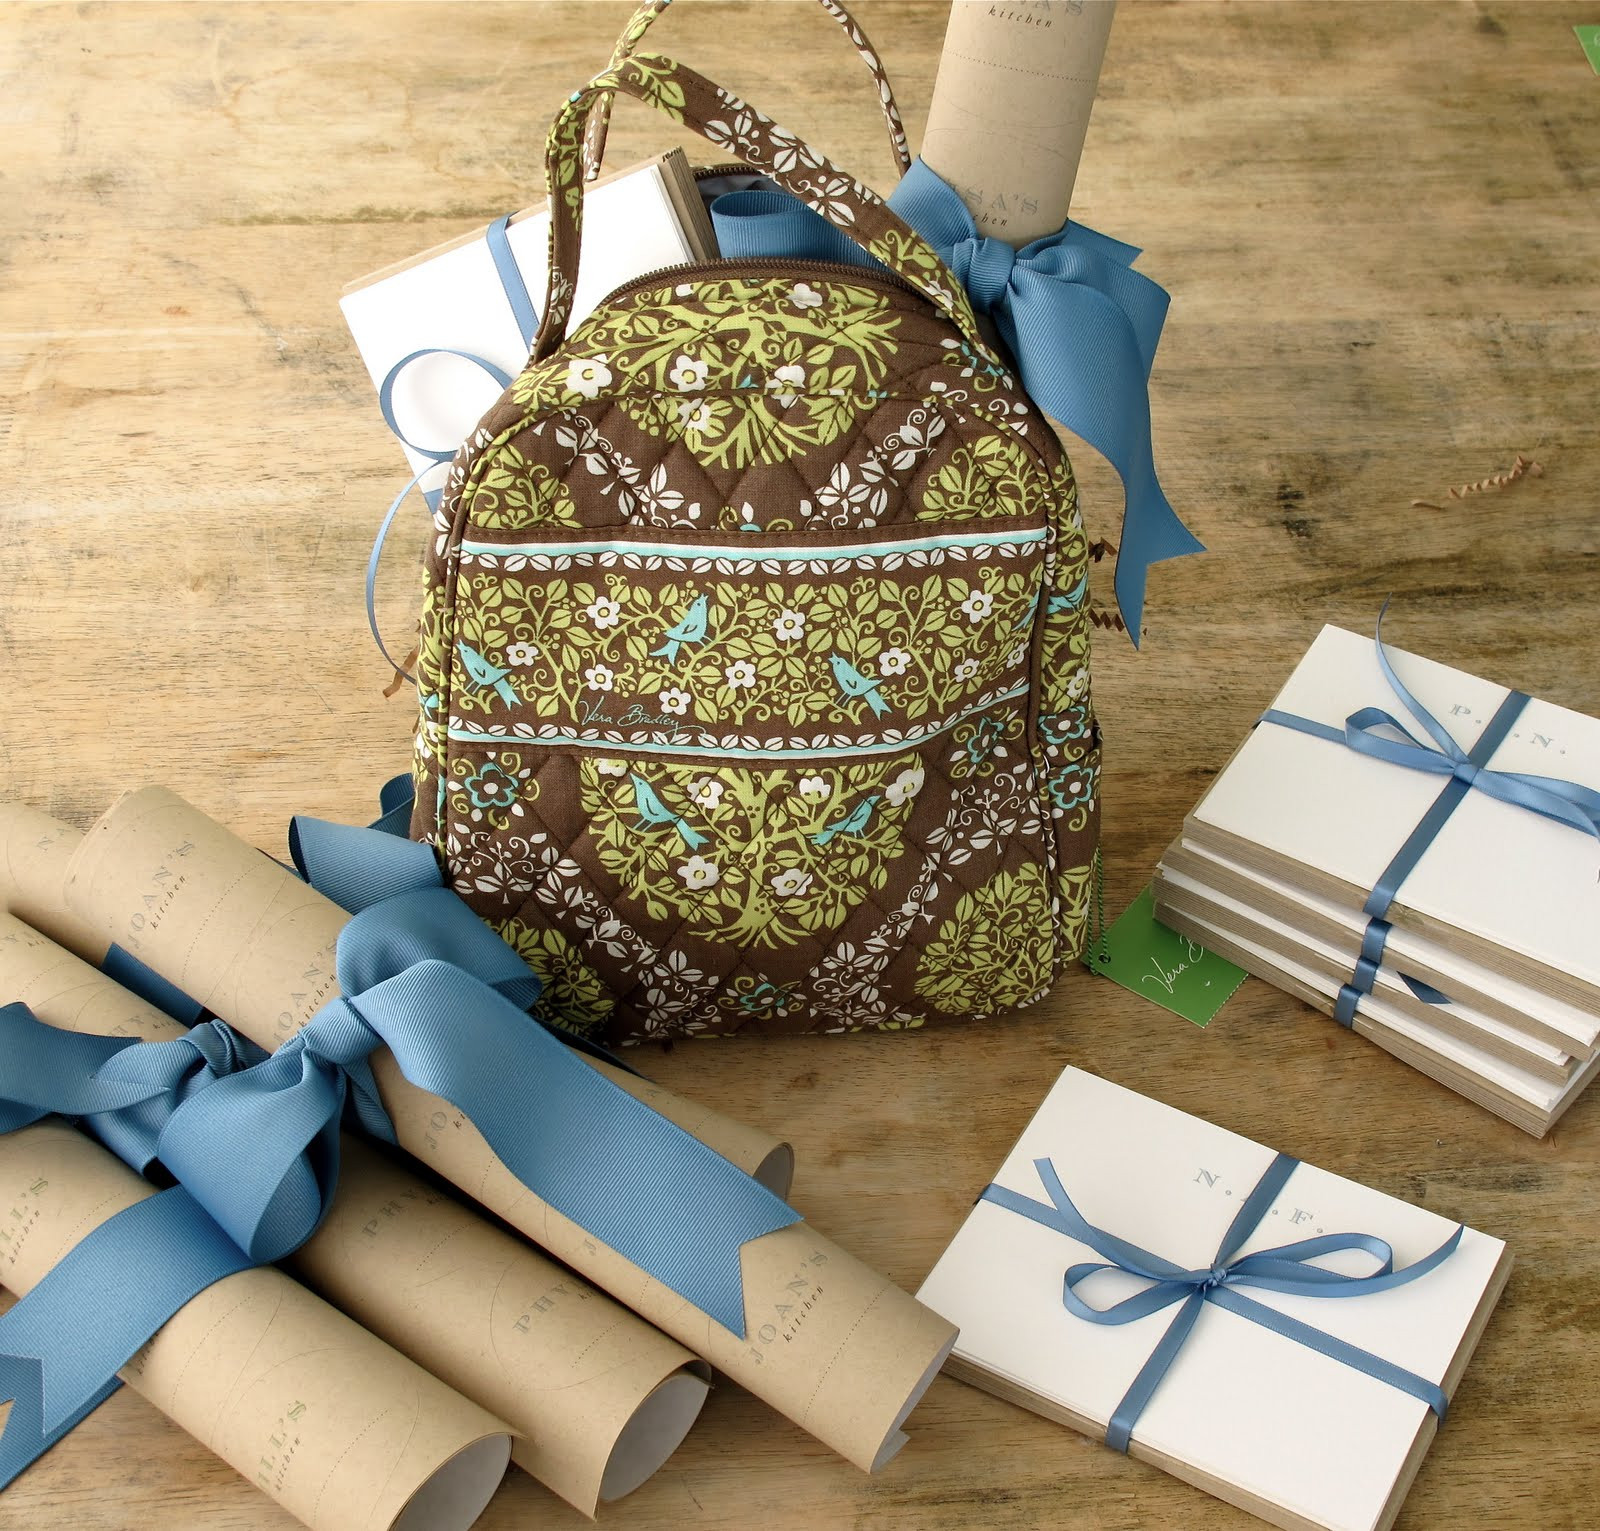 Host Gift Ideas For Couples  Inexpensive Baby Shower Hostess Image